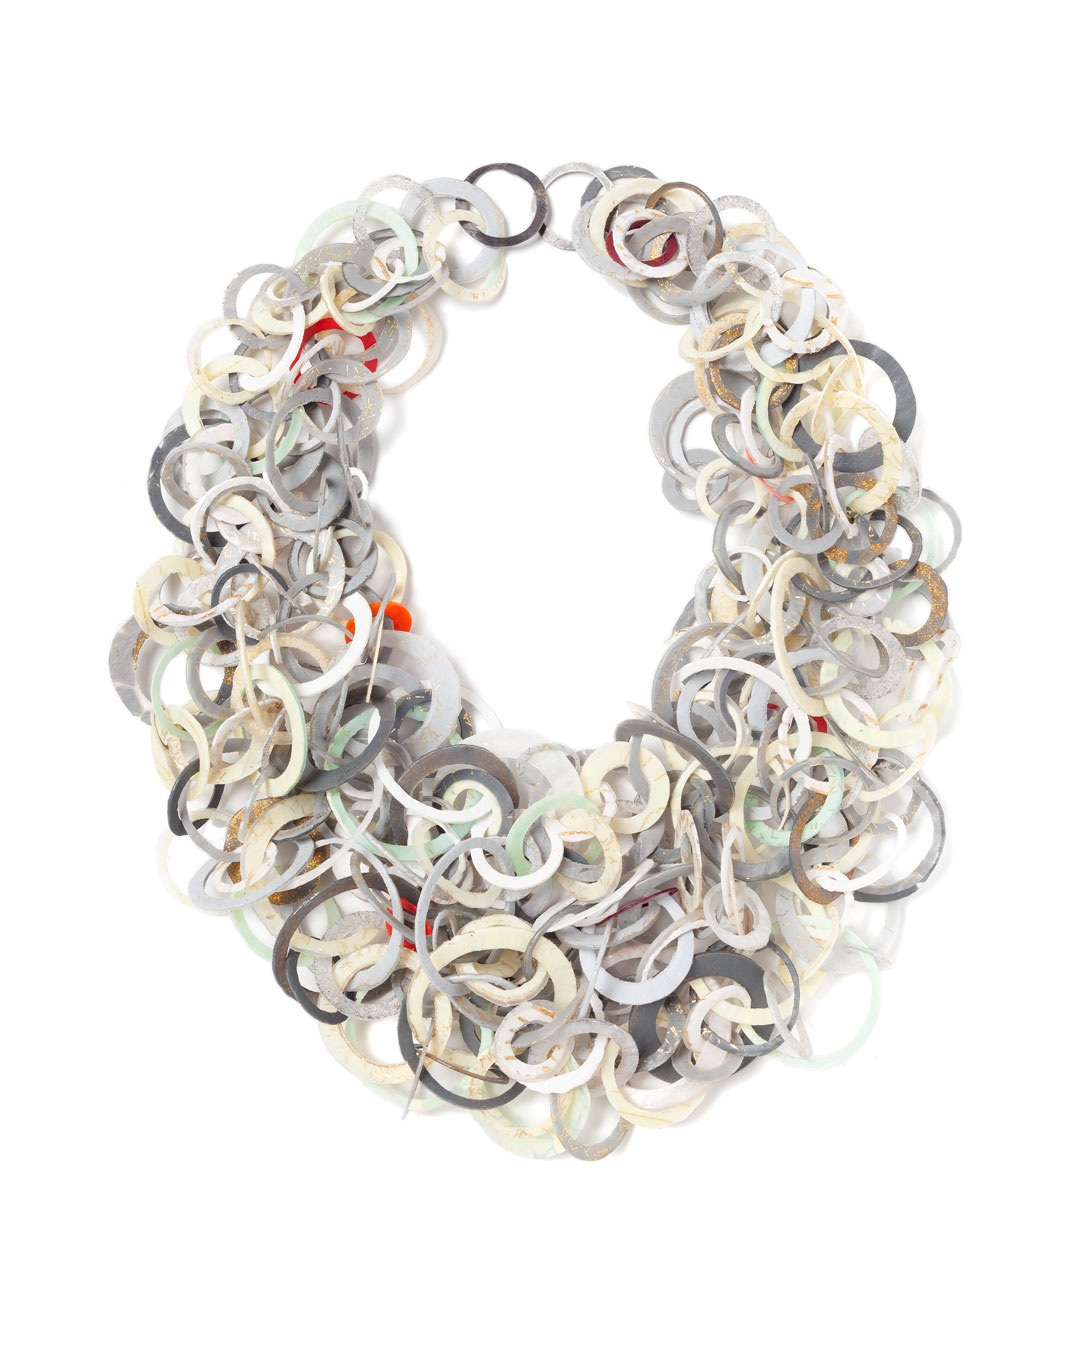 Karola Torkos, Entwined, 2020, necklace; plastic, glitter, oxidised silver, 300 x 240 mm, sold